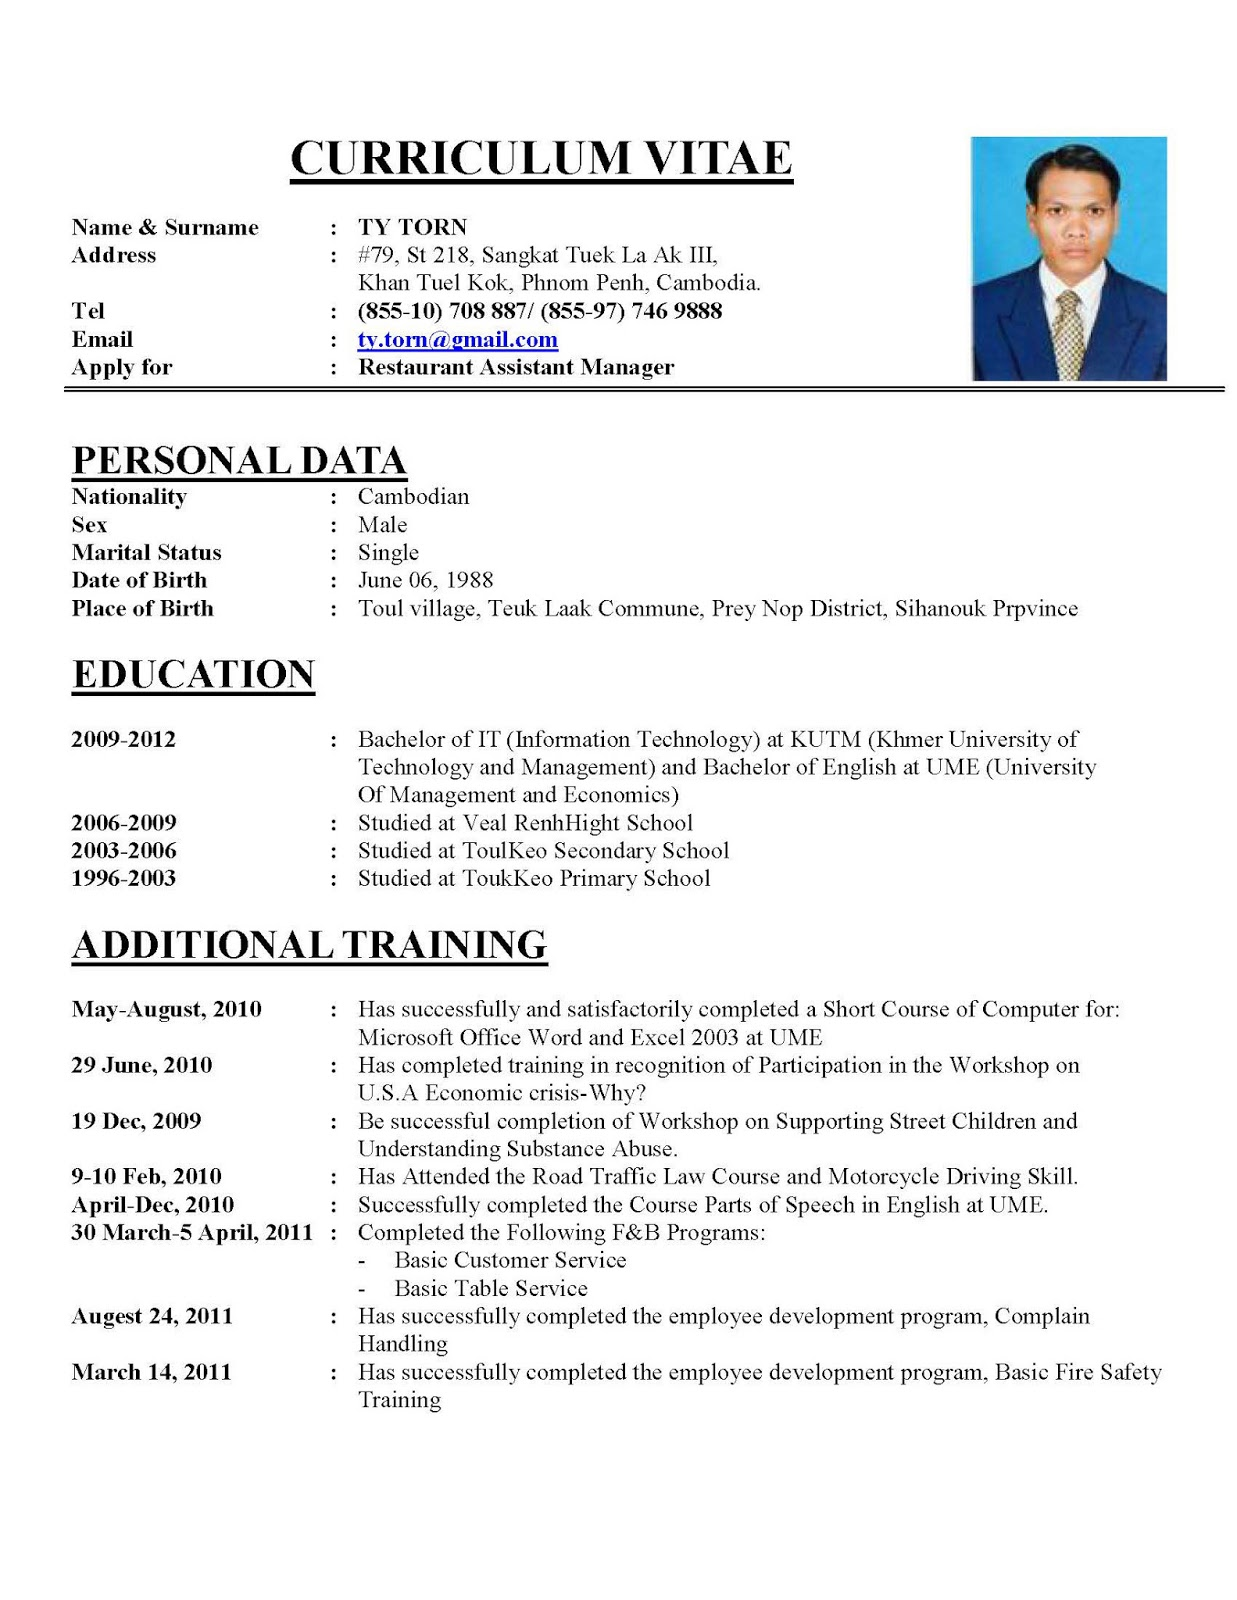 sample of curriculum vitae for housekeeping resume builder sample of curriculum vitae for housekeeping housekeeping resume samples online cv builder and few tips on